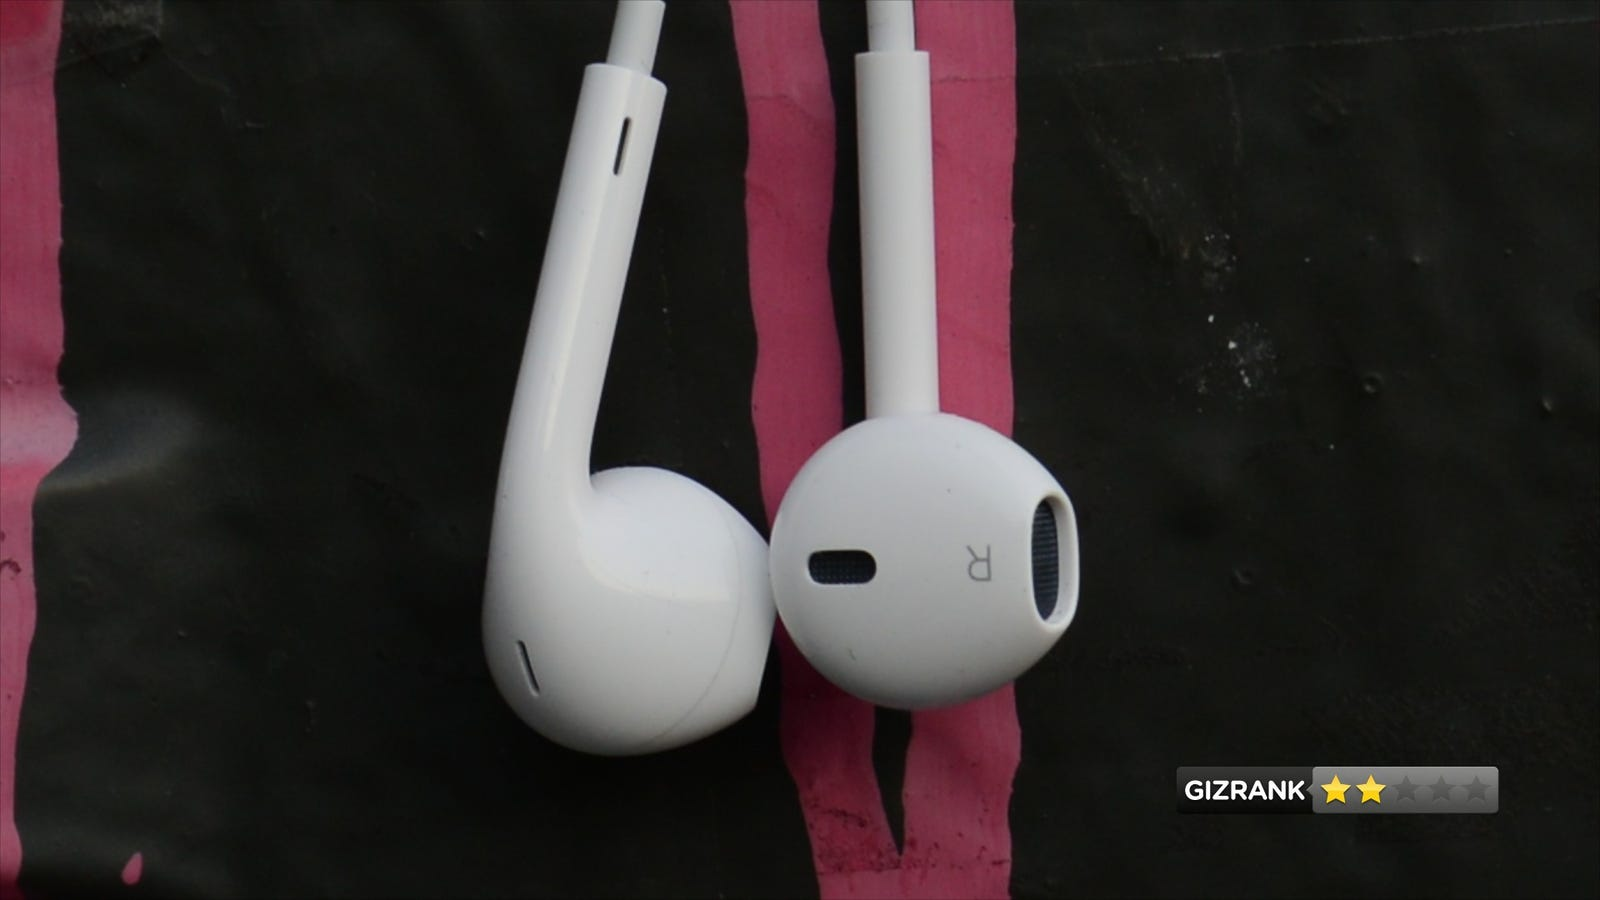 apple earbuds jack - Apple EarPods Review: Better! (But Still Garbage)